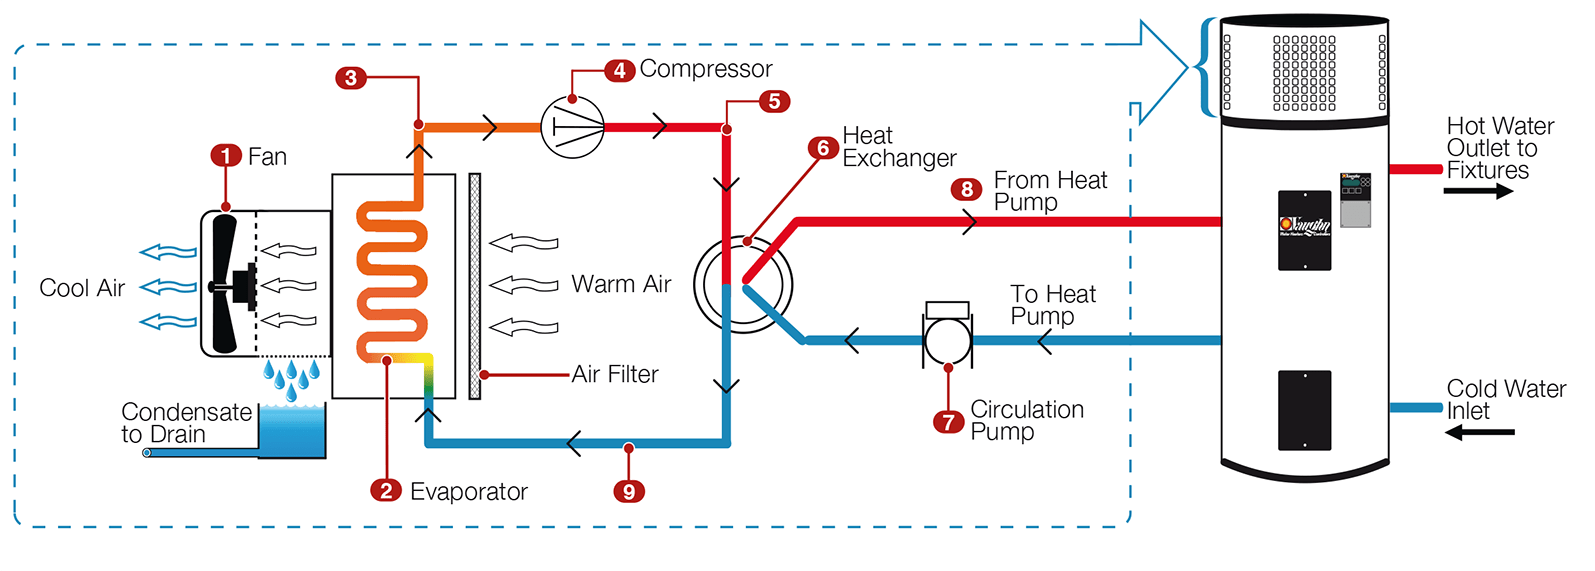 Central Air Unit Cost